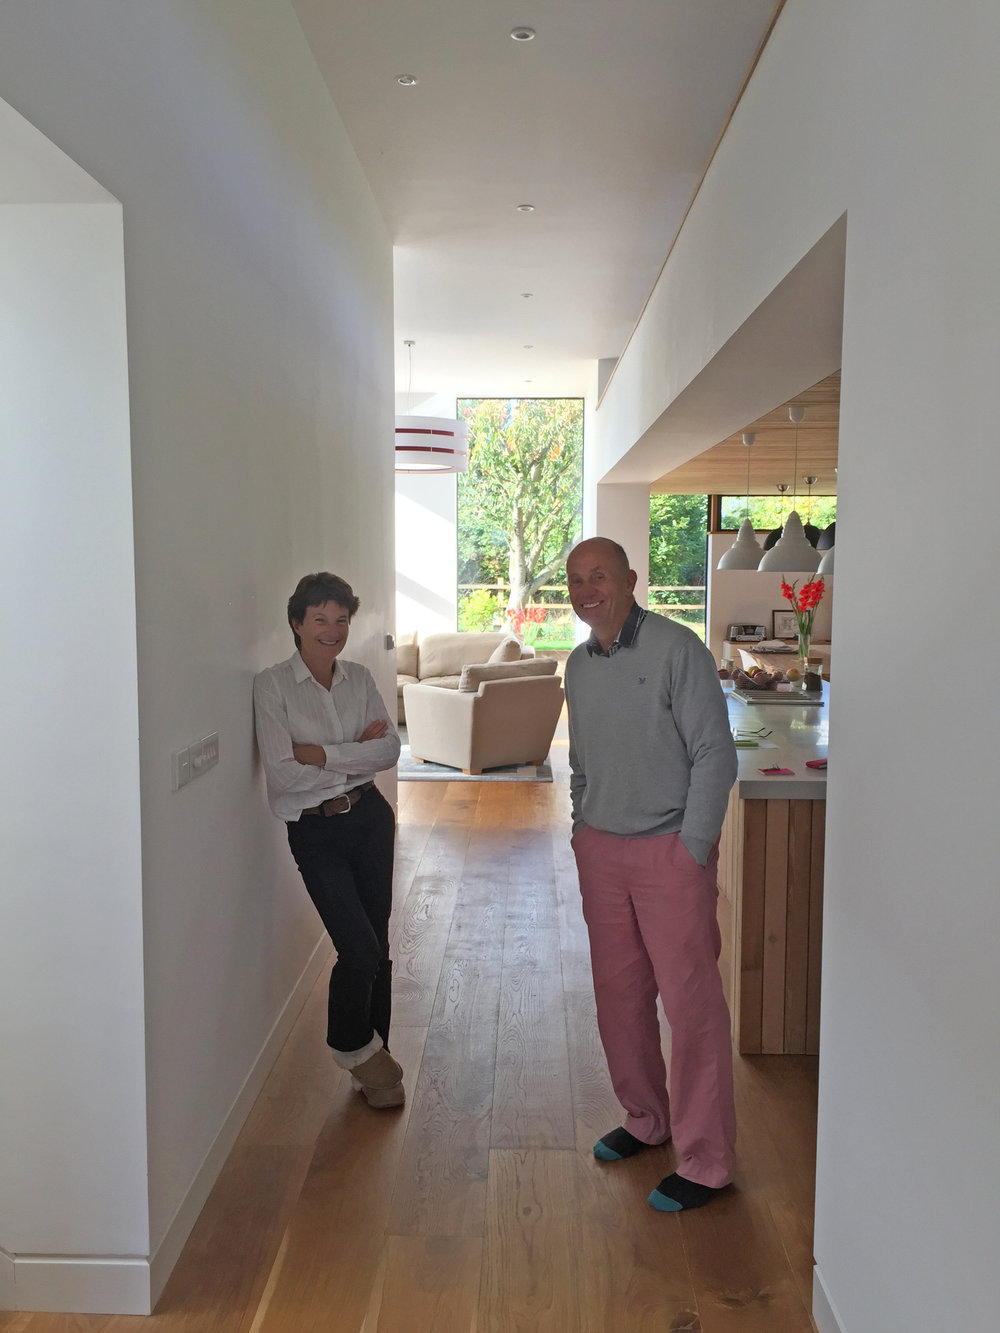 Clive and Jeanne in their new home